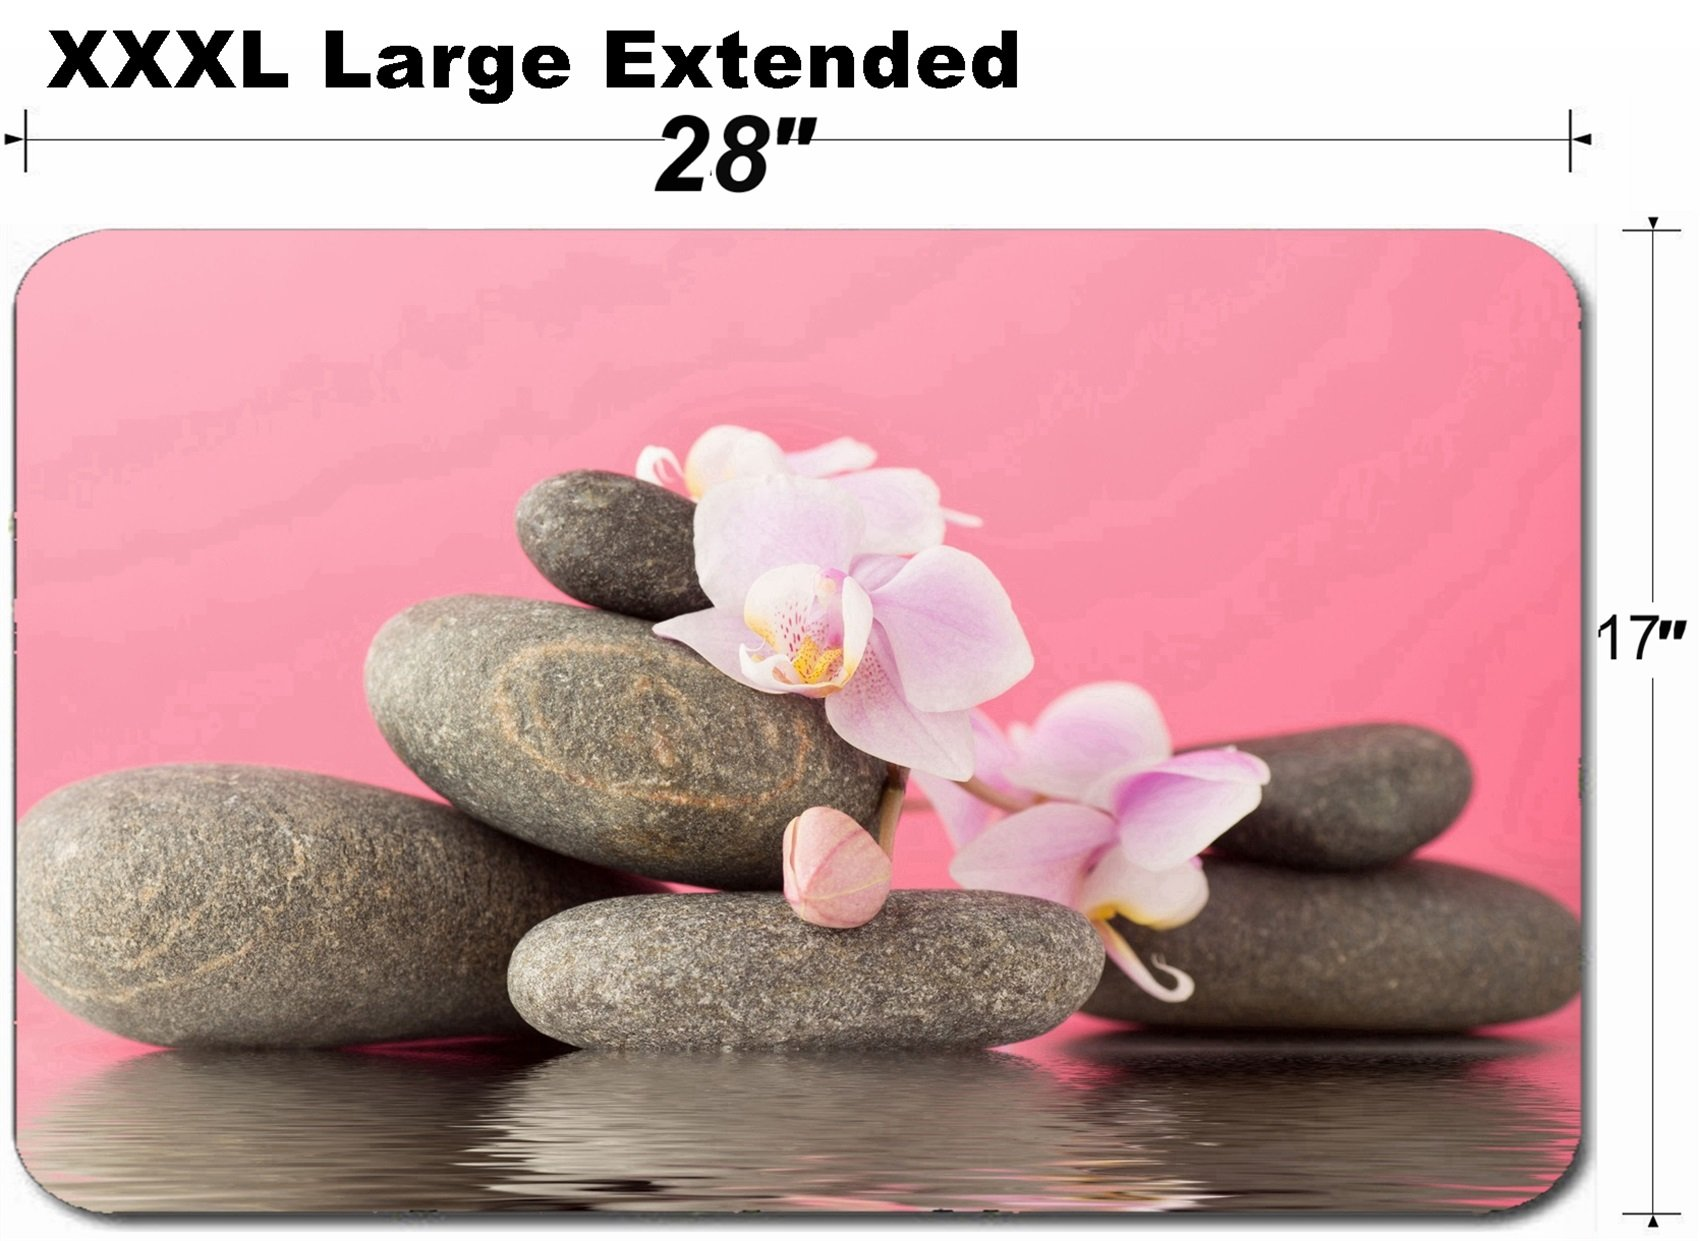 MSD Large Table Mat Non-Slip Natural Rubber Desk Pads Image ID 28544324 Spa Stones on Pink Background with Orchids